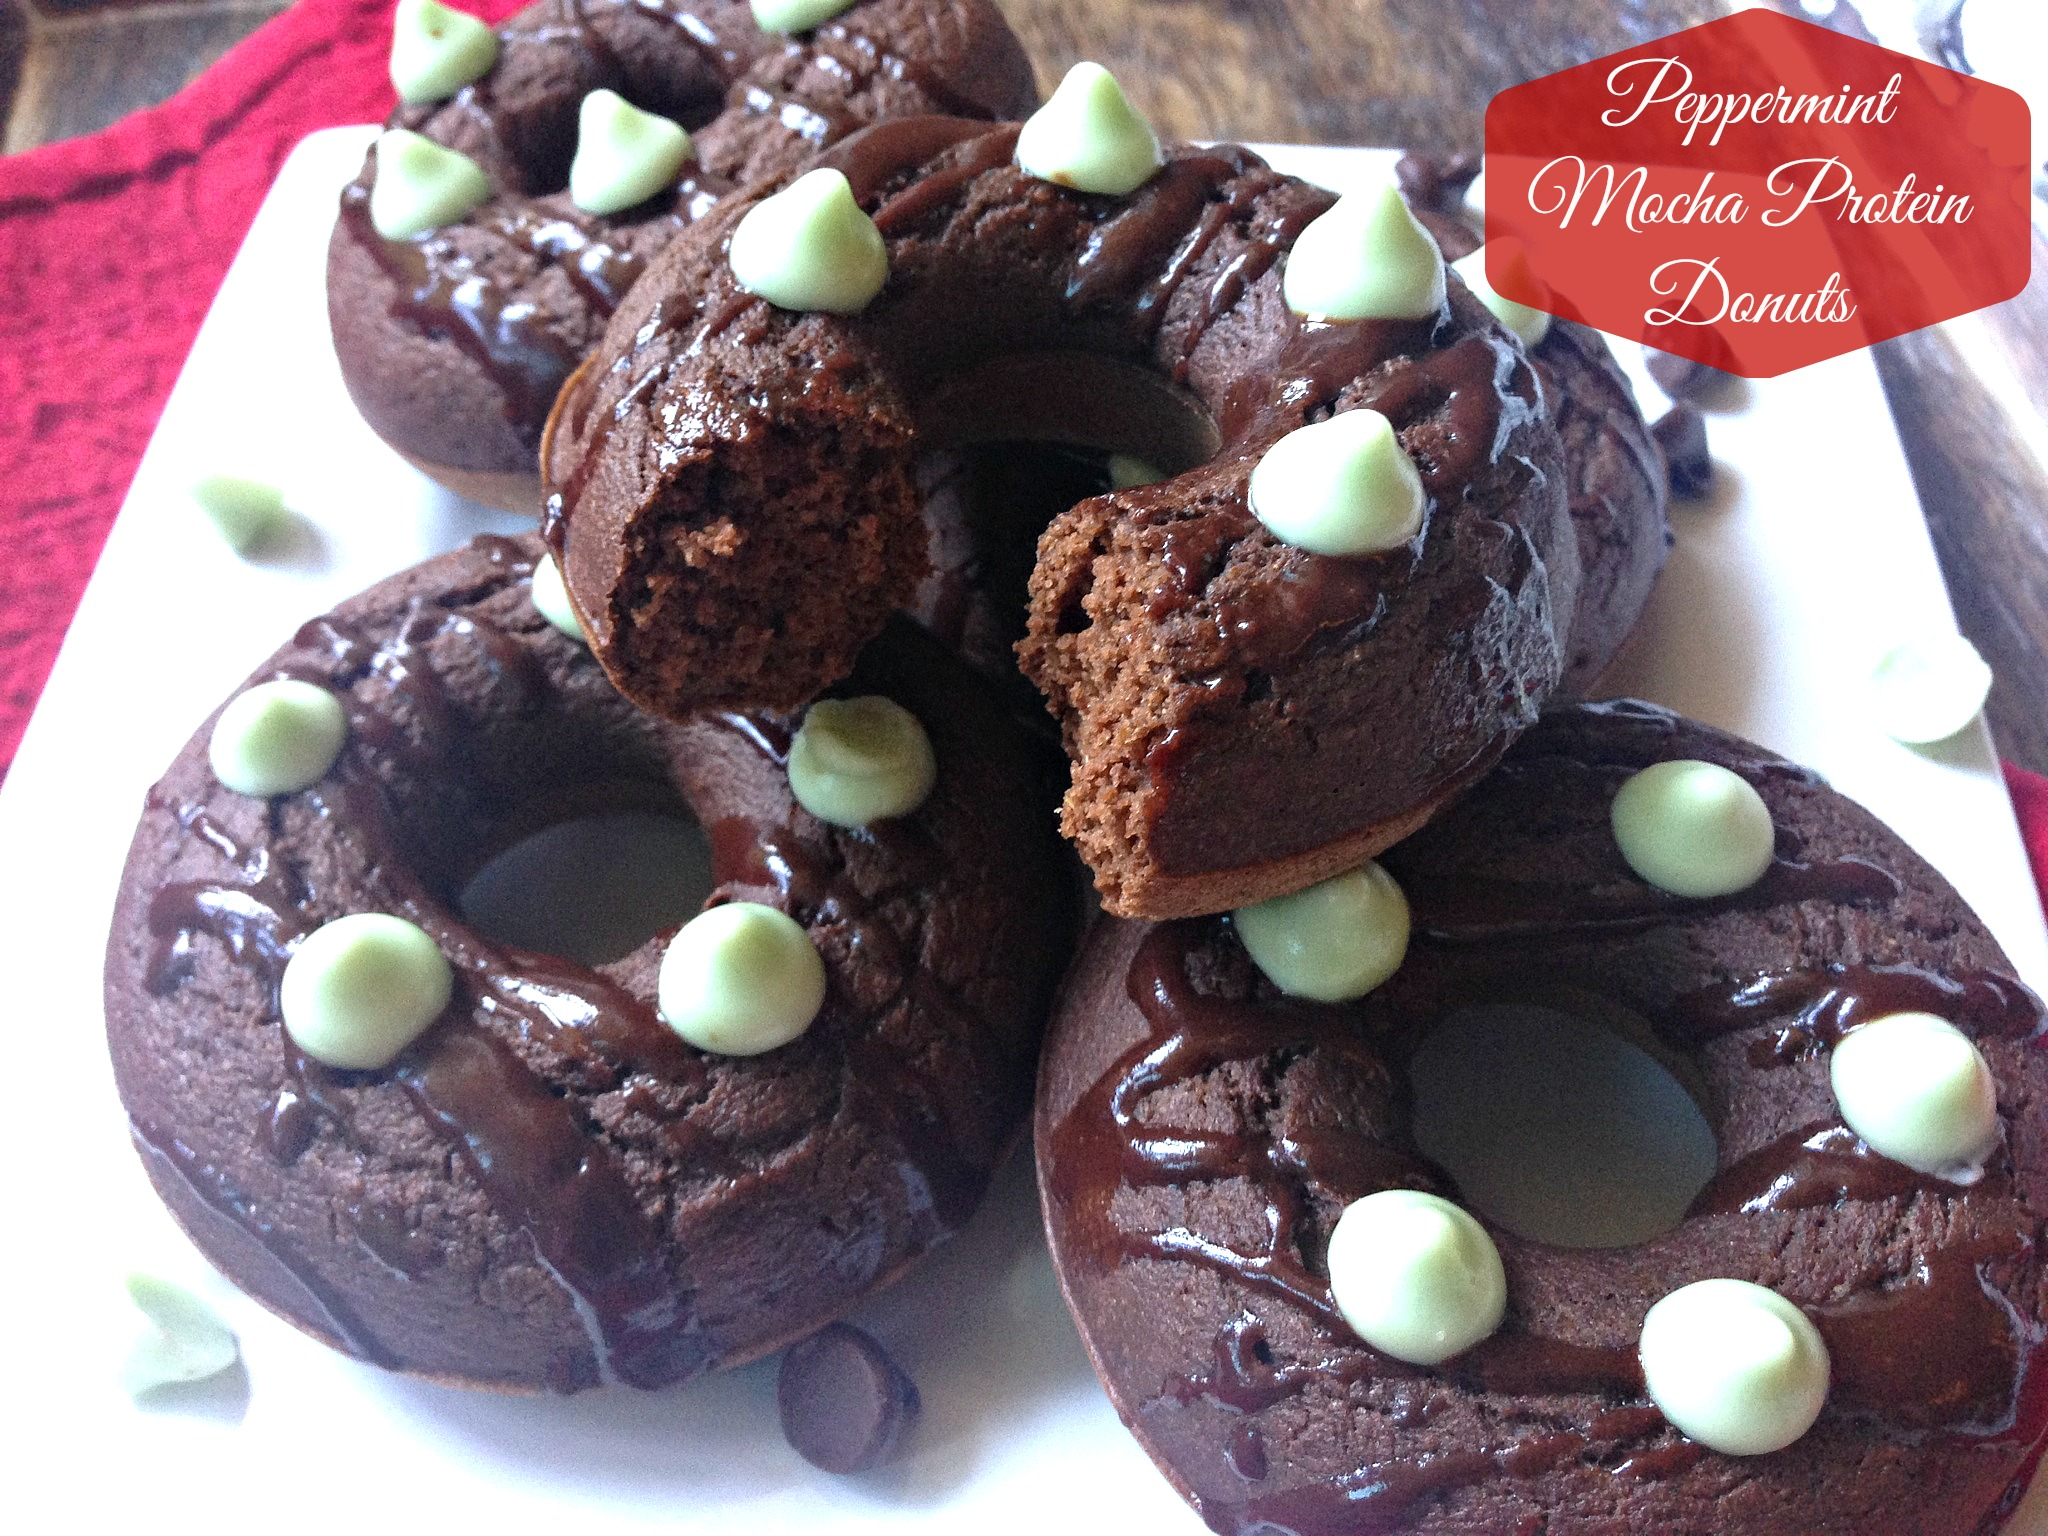 Peppermint Mocha Protein Donuts